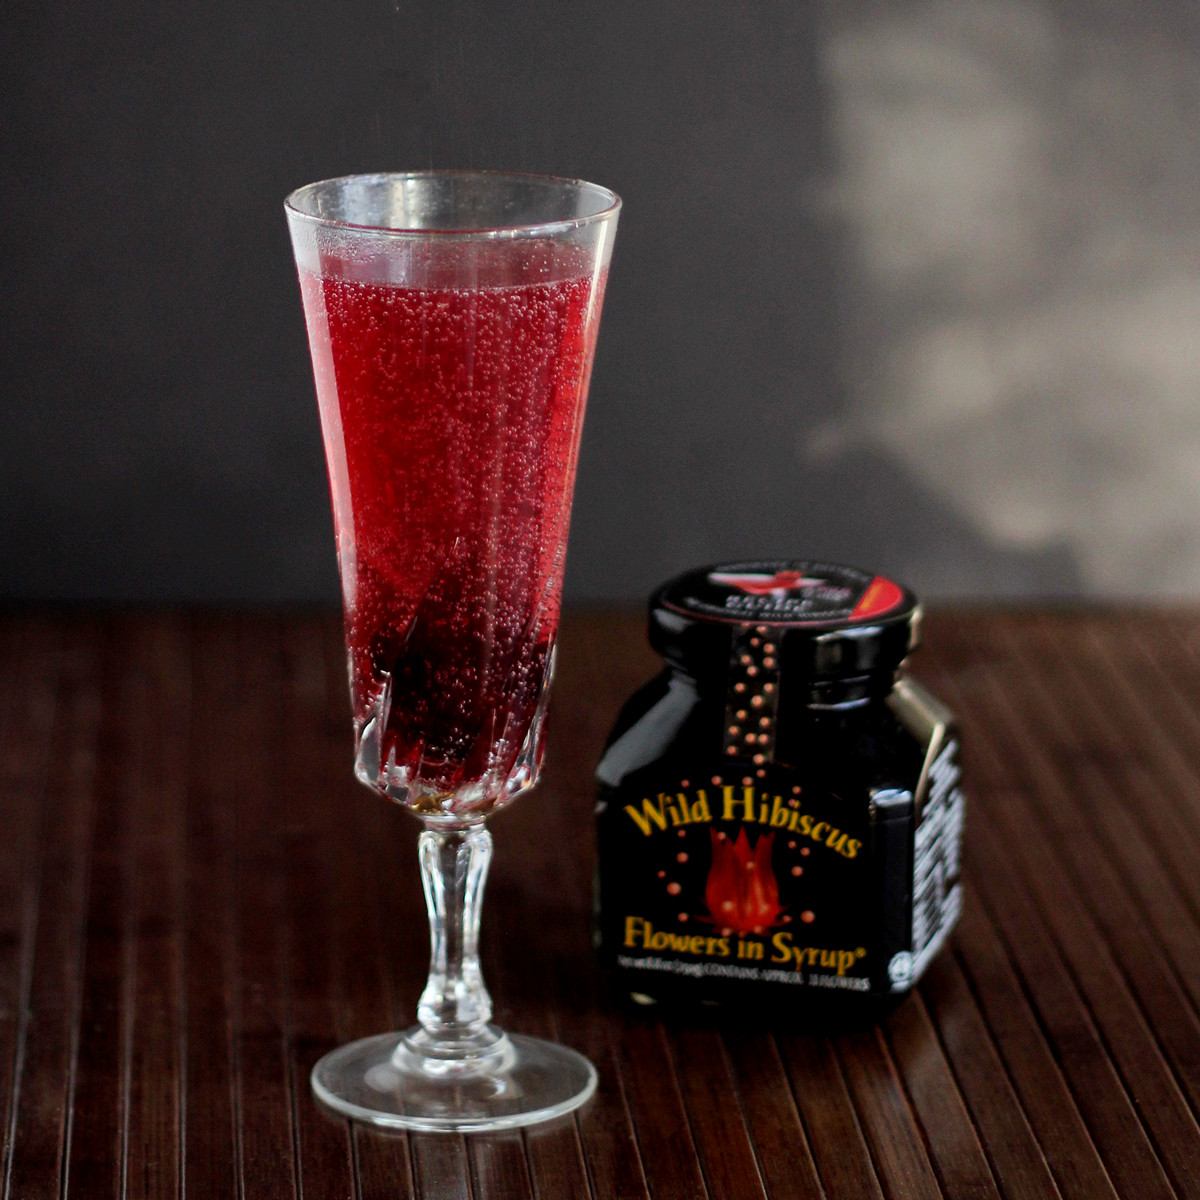 Cookistry sparkling hibiscus lemonade 1 tablespoon hibiscus syrup from jar of hibiscus flowers in syrup izmirmasajfo